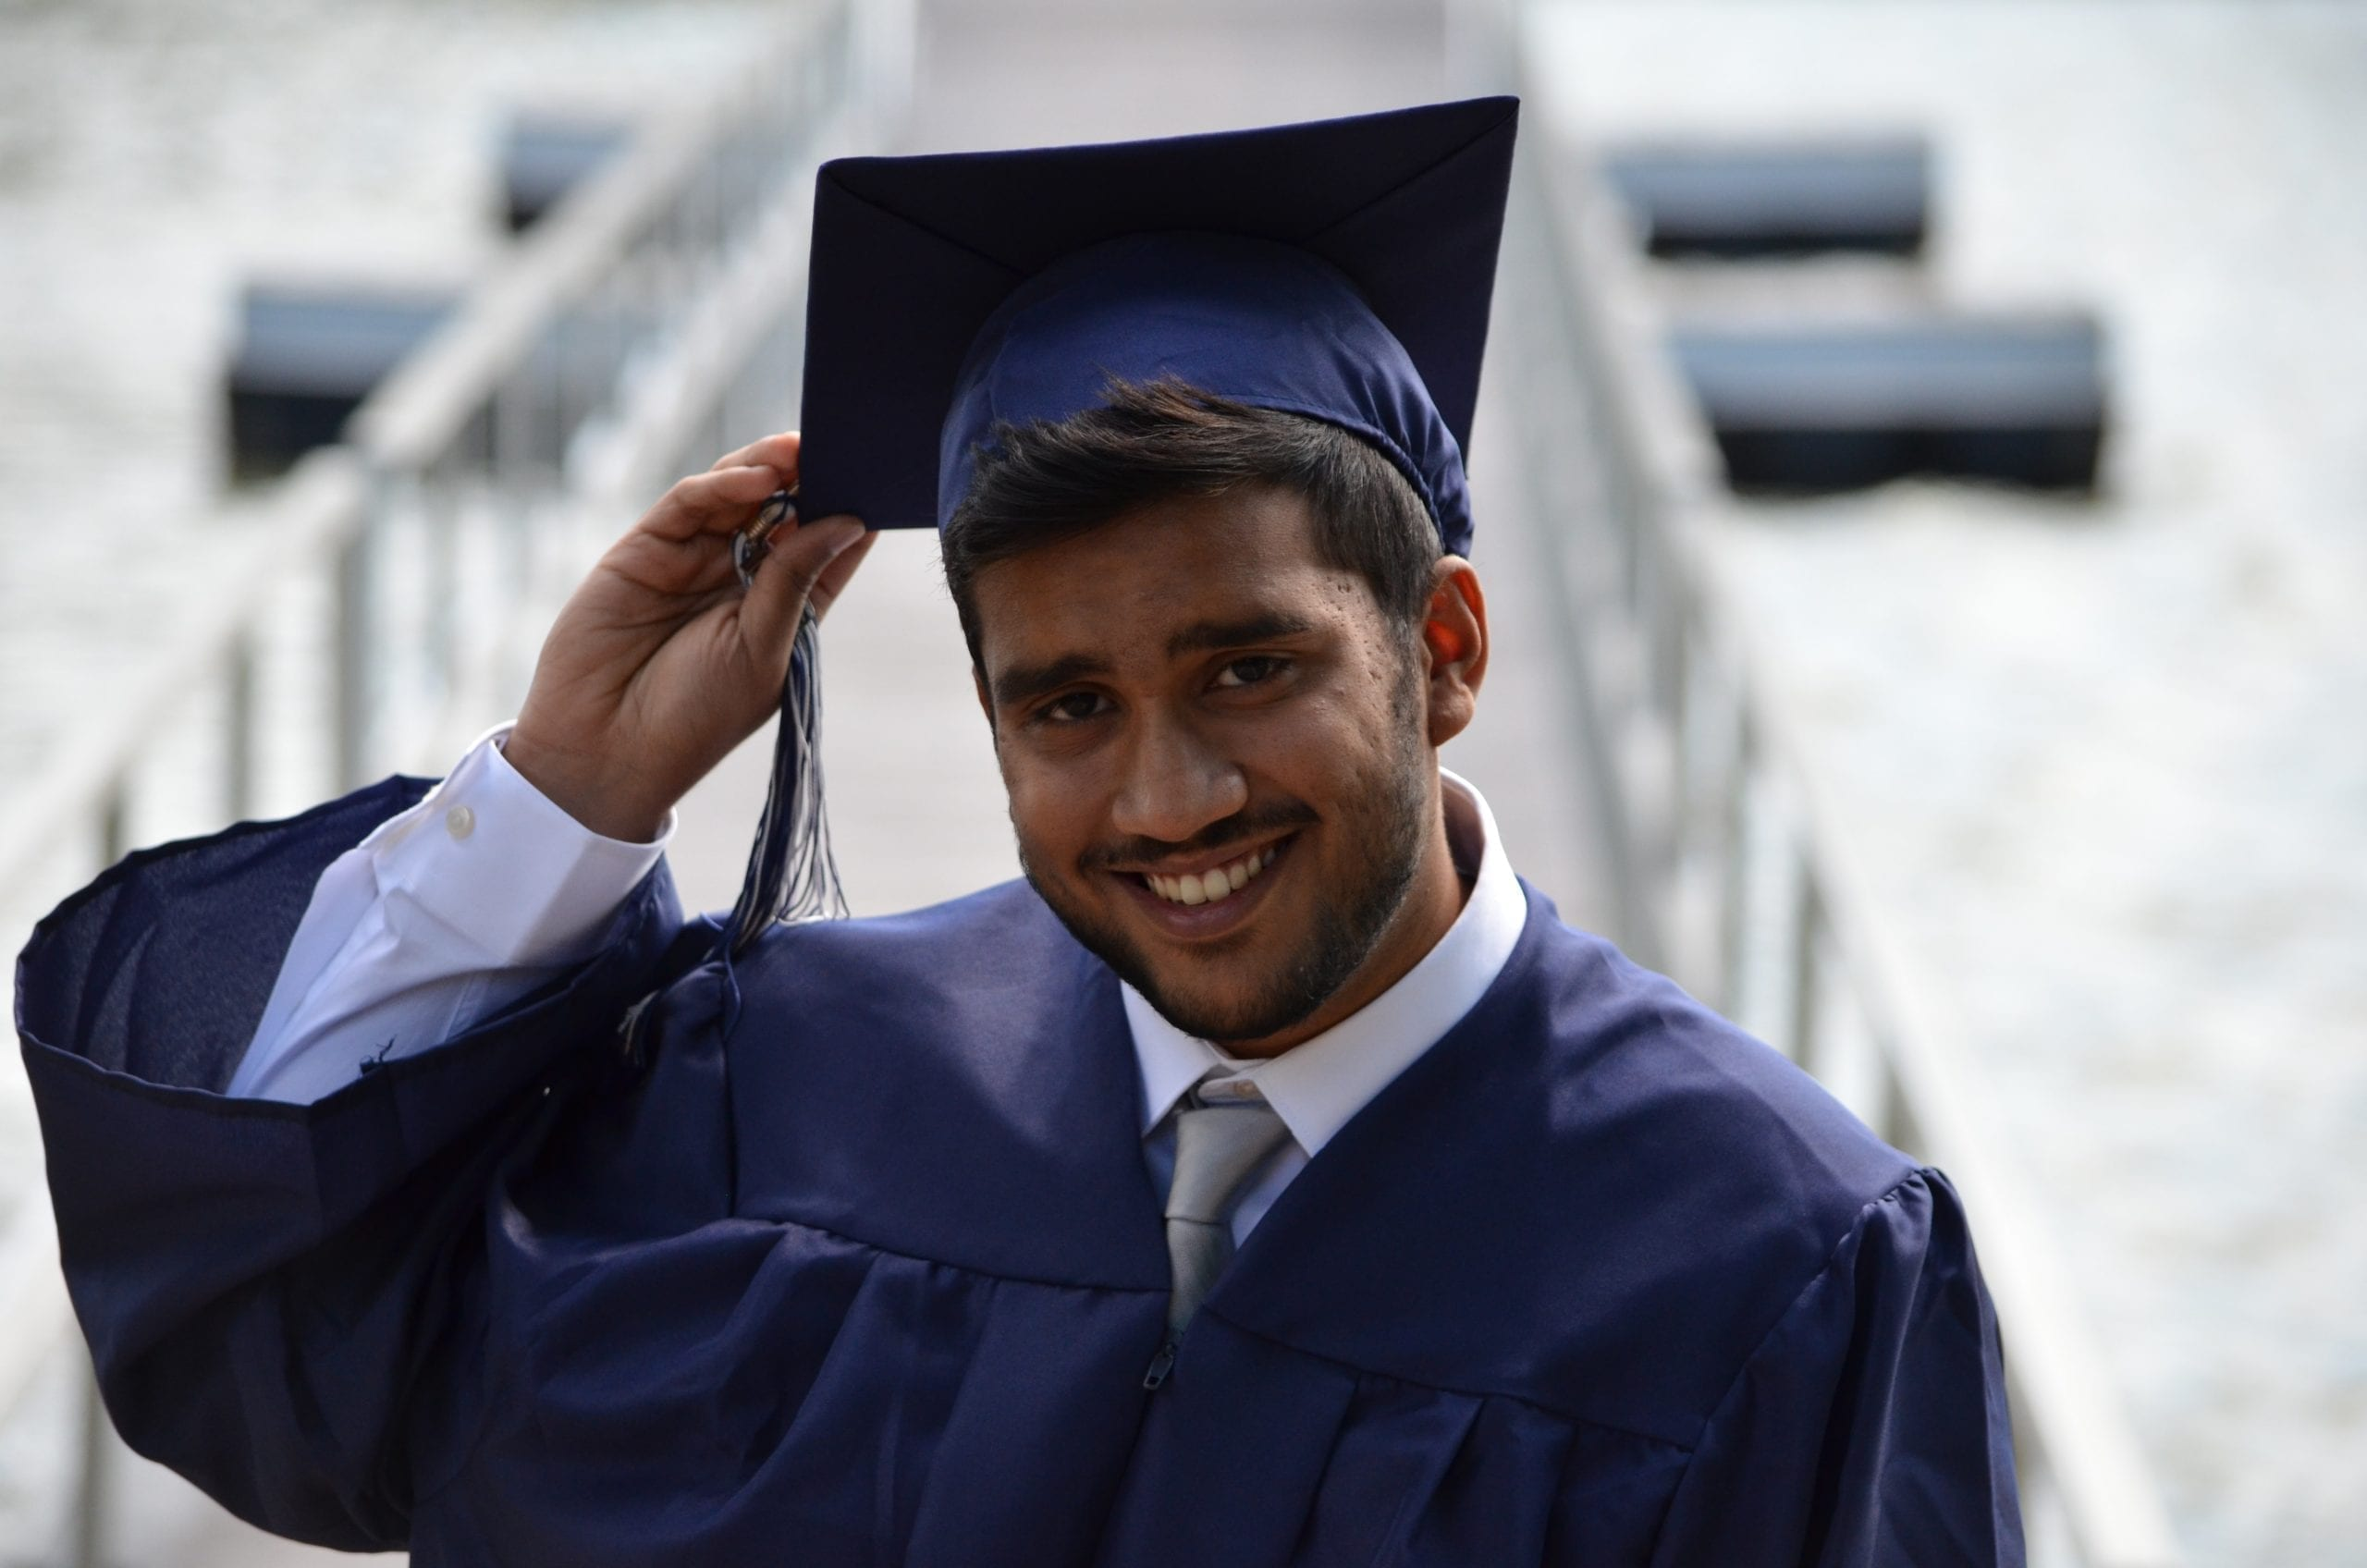 A recent college graduate in cap and gown, highlighting buying a house and qualifying for a mortgage with a student loan